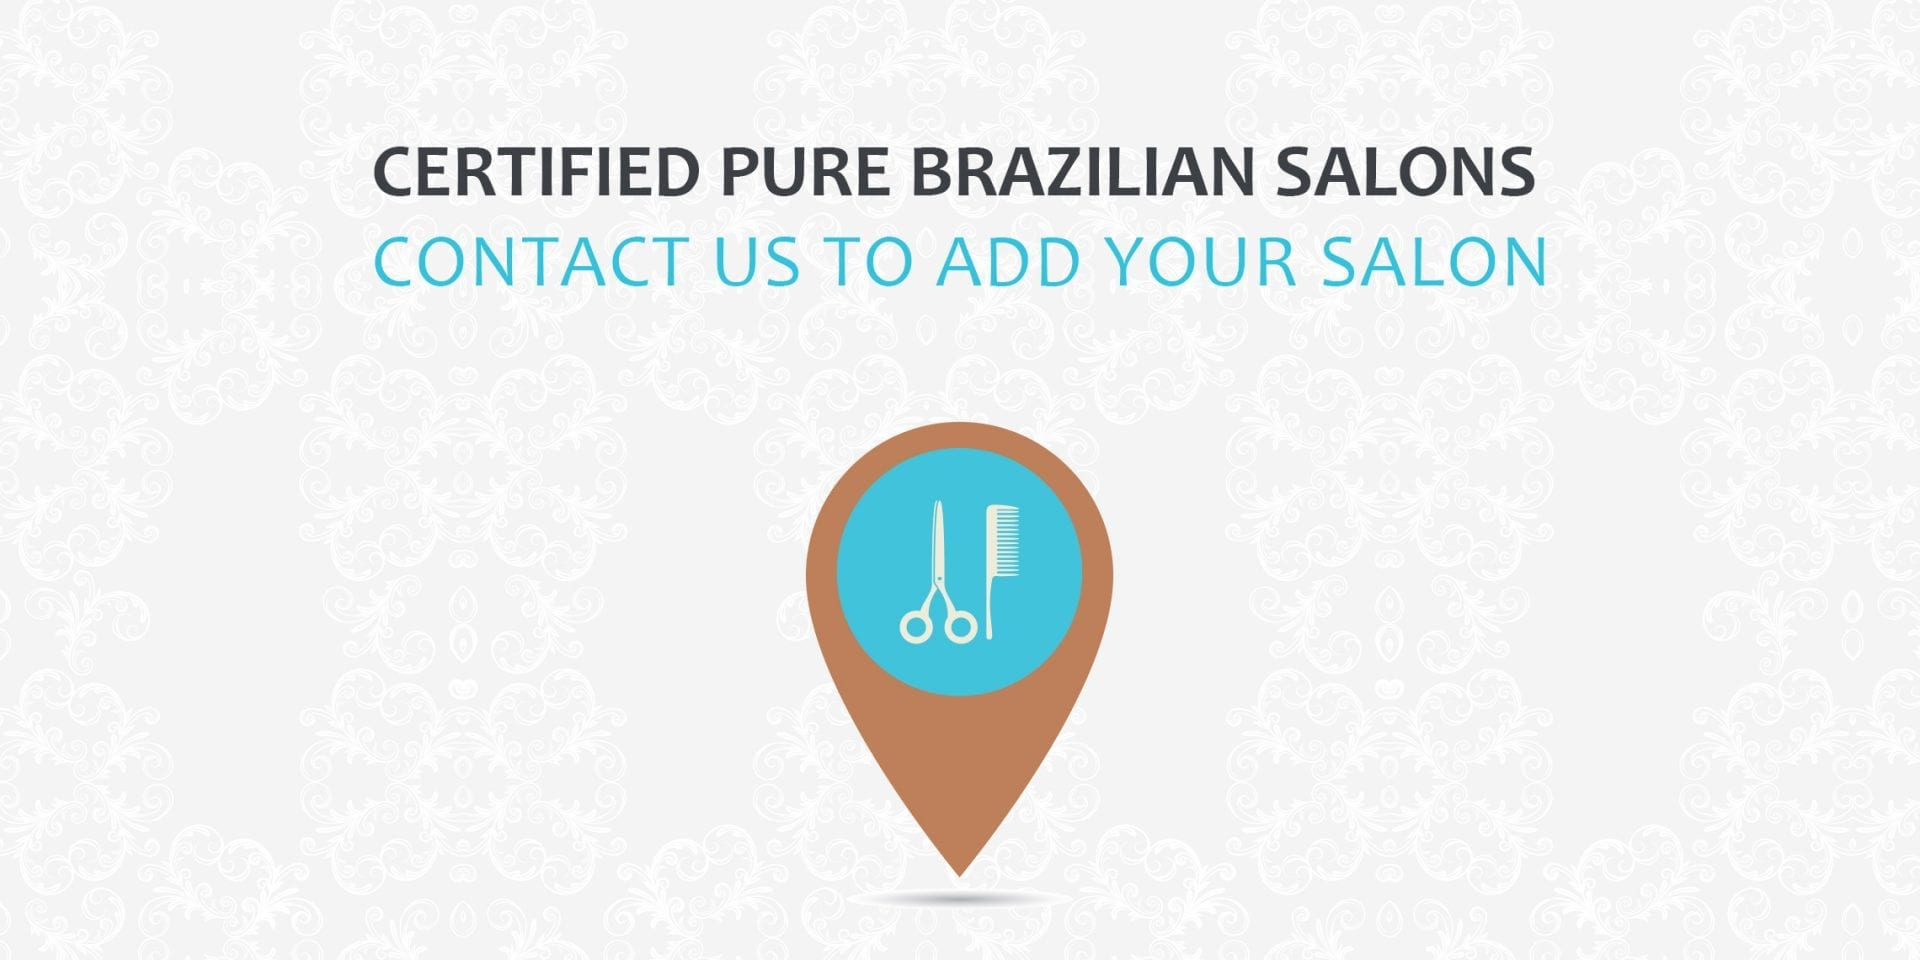 PURE BRAZILIAN IS PROUD TO BE REPRESENTED BY THESE CERTIFIED SALONS